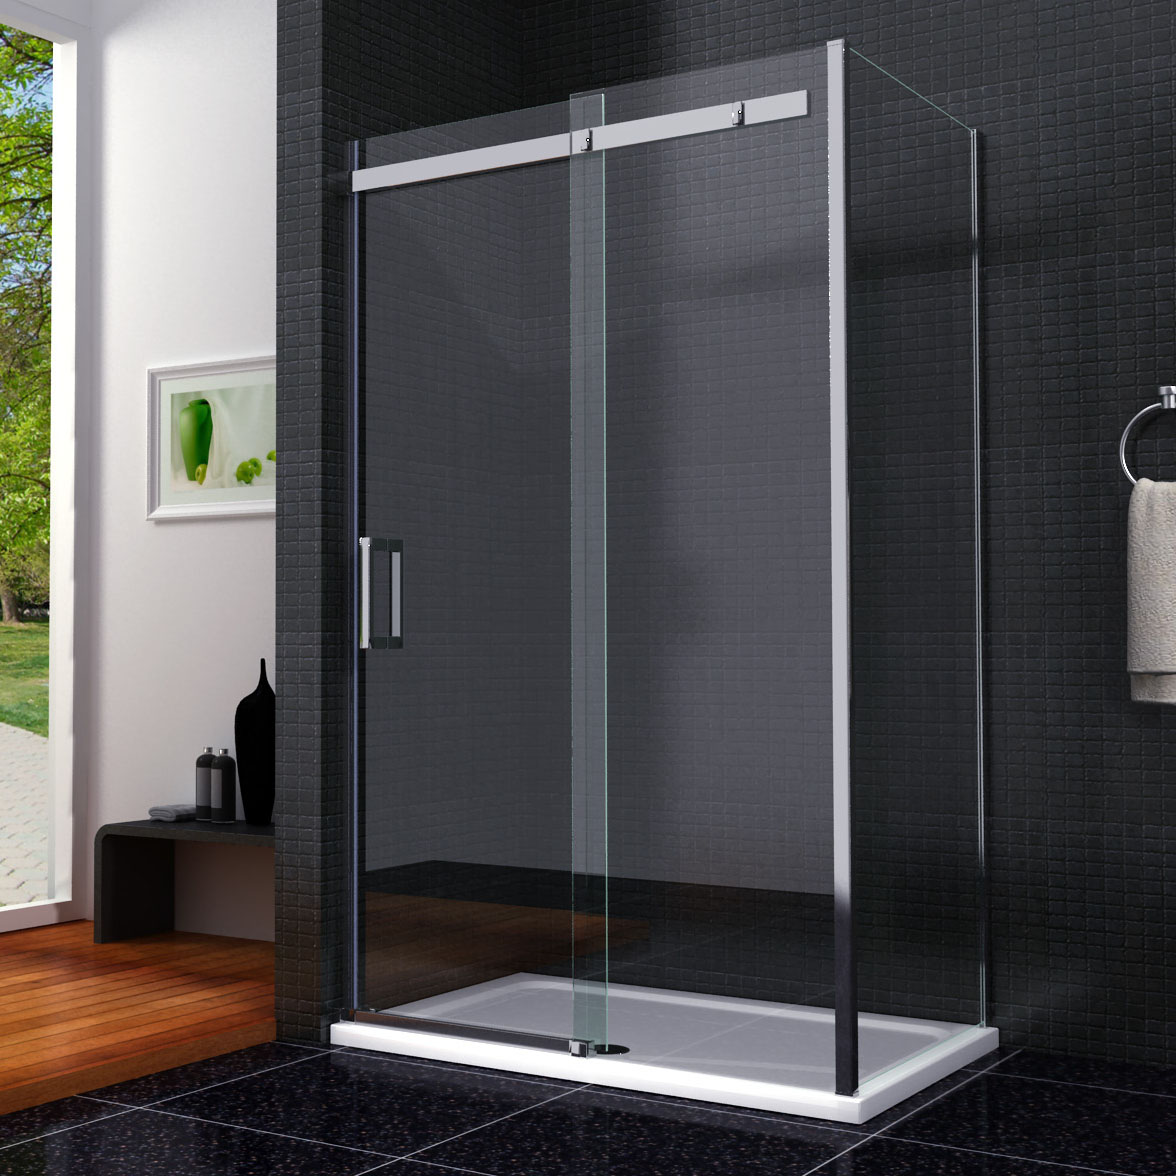 1400 x 700 frameless sliding door shower enclosure cubicle for 1400 sliding shower door